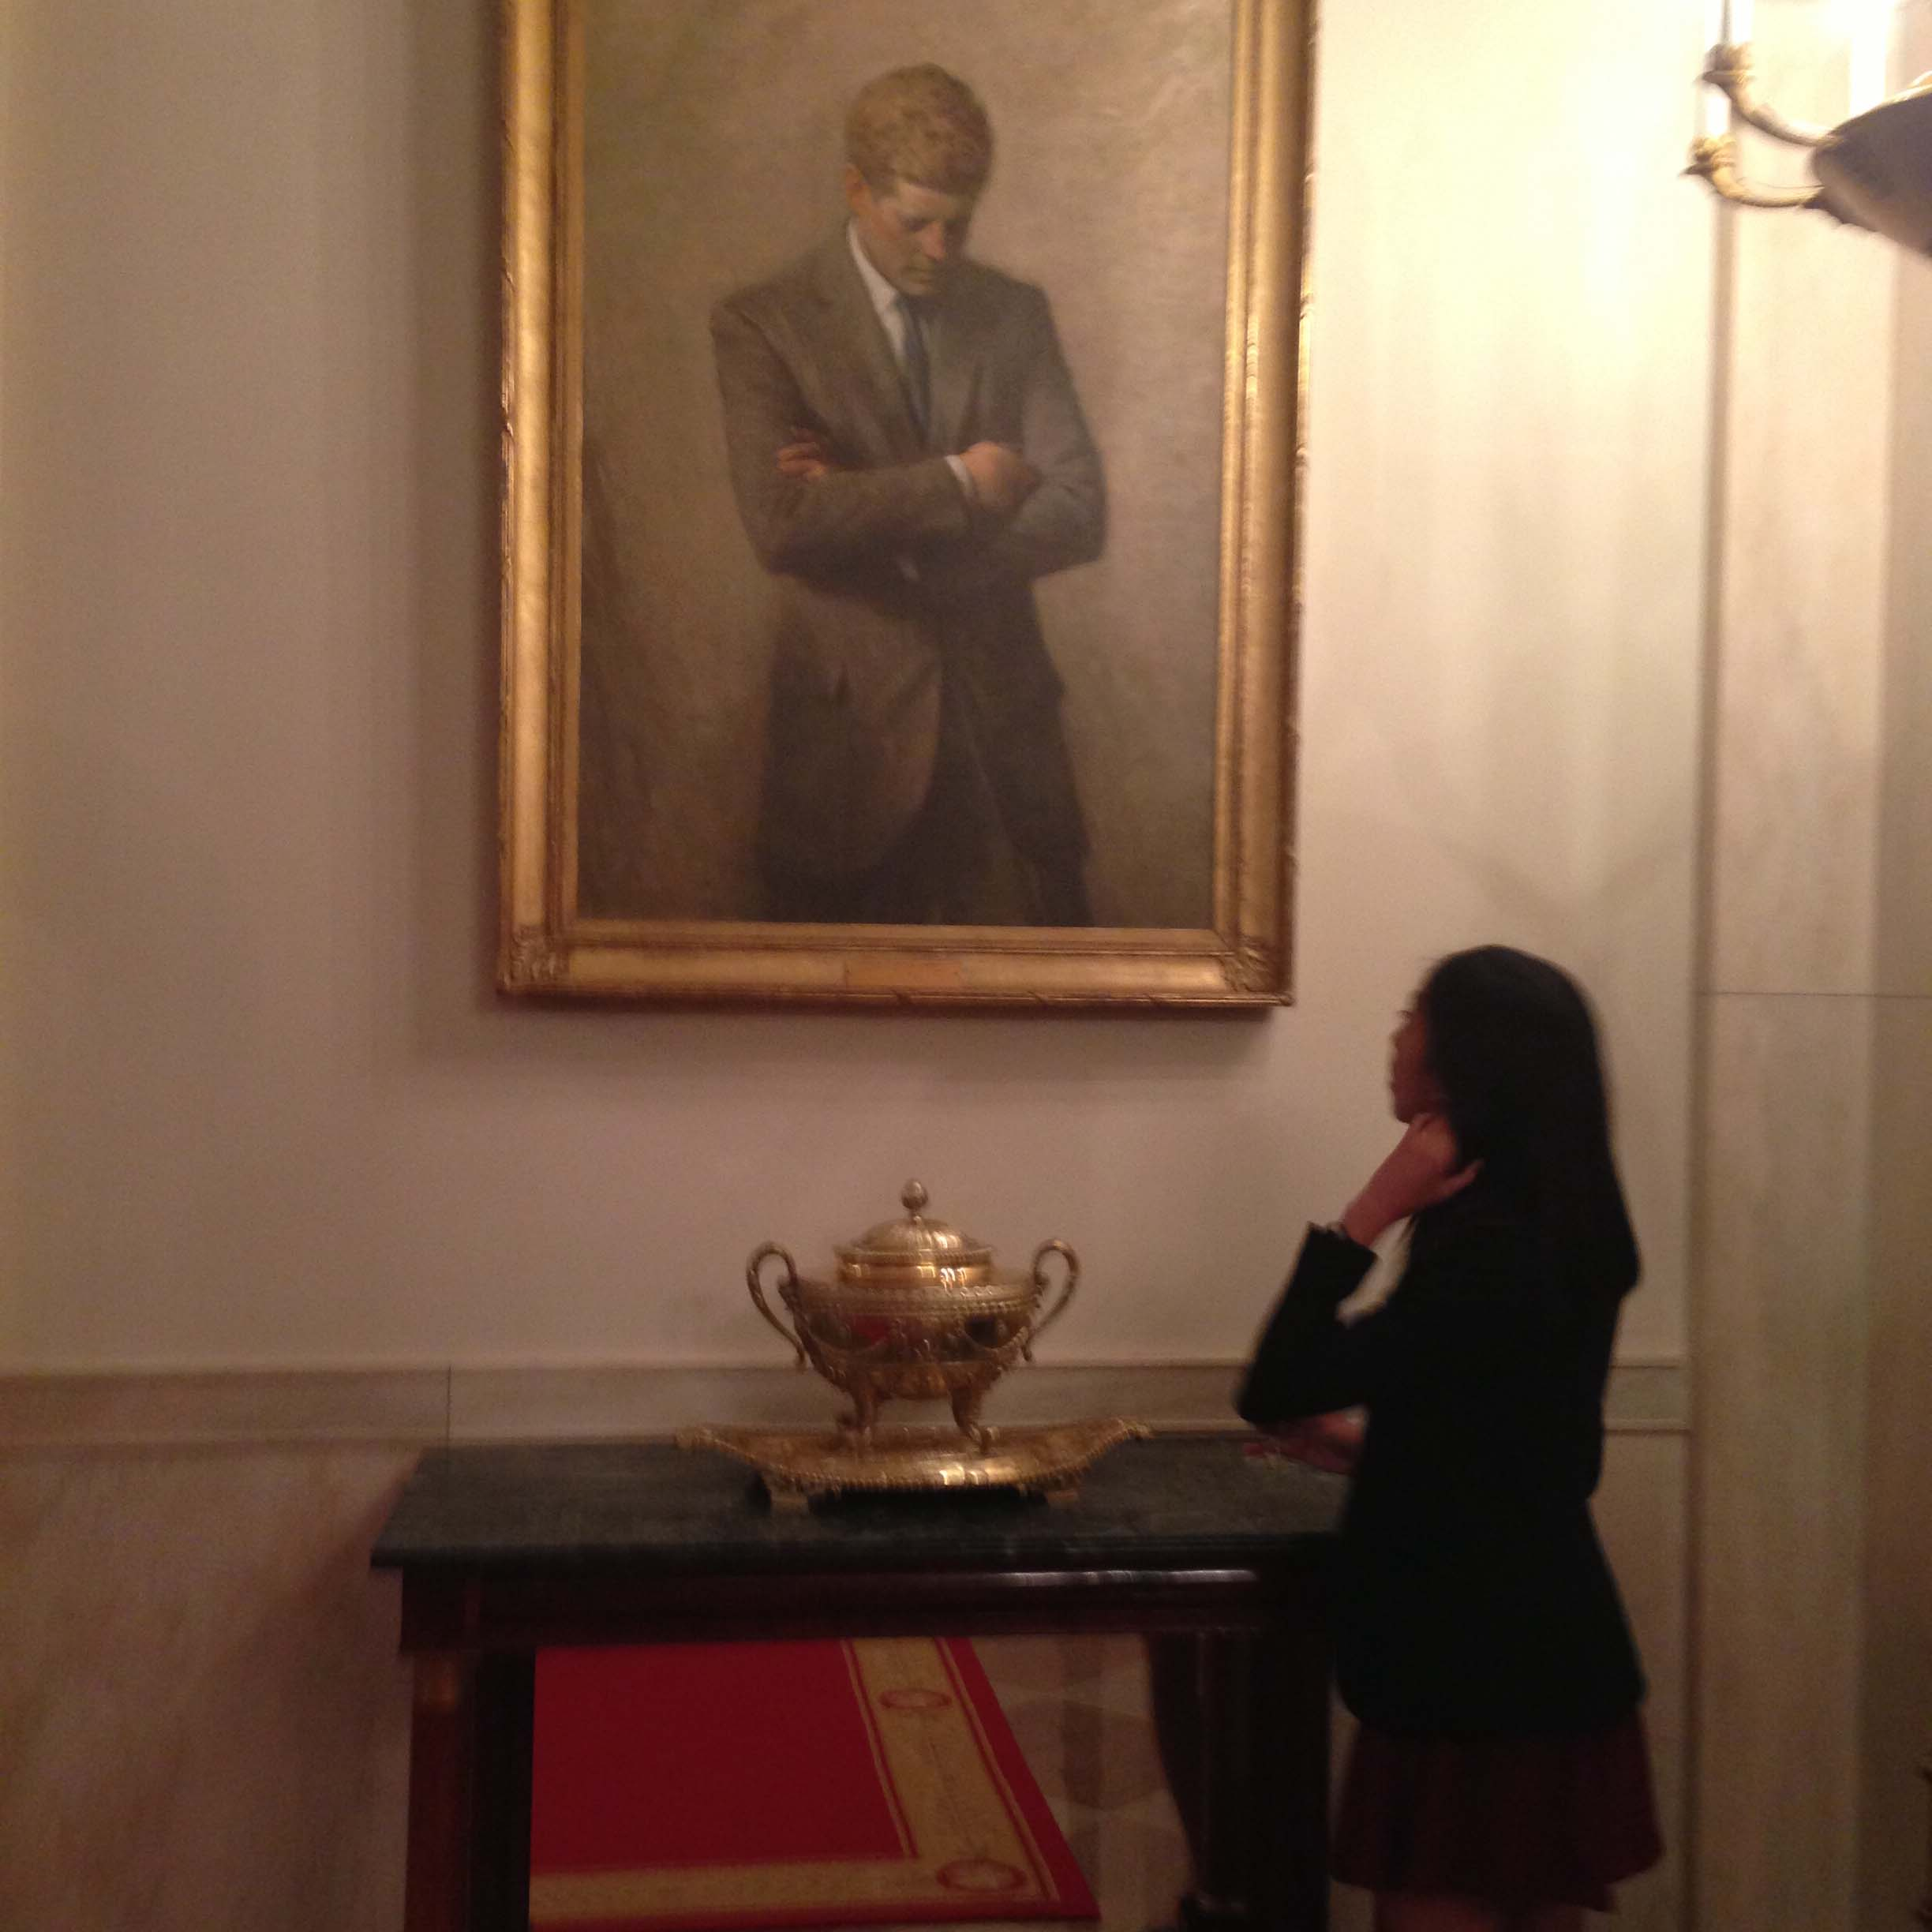 Mentee Jackie mesmerized by a JFK painting in the White House hallway.